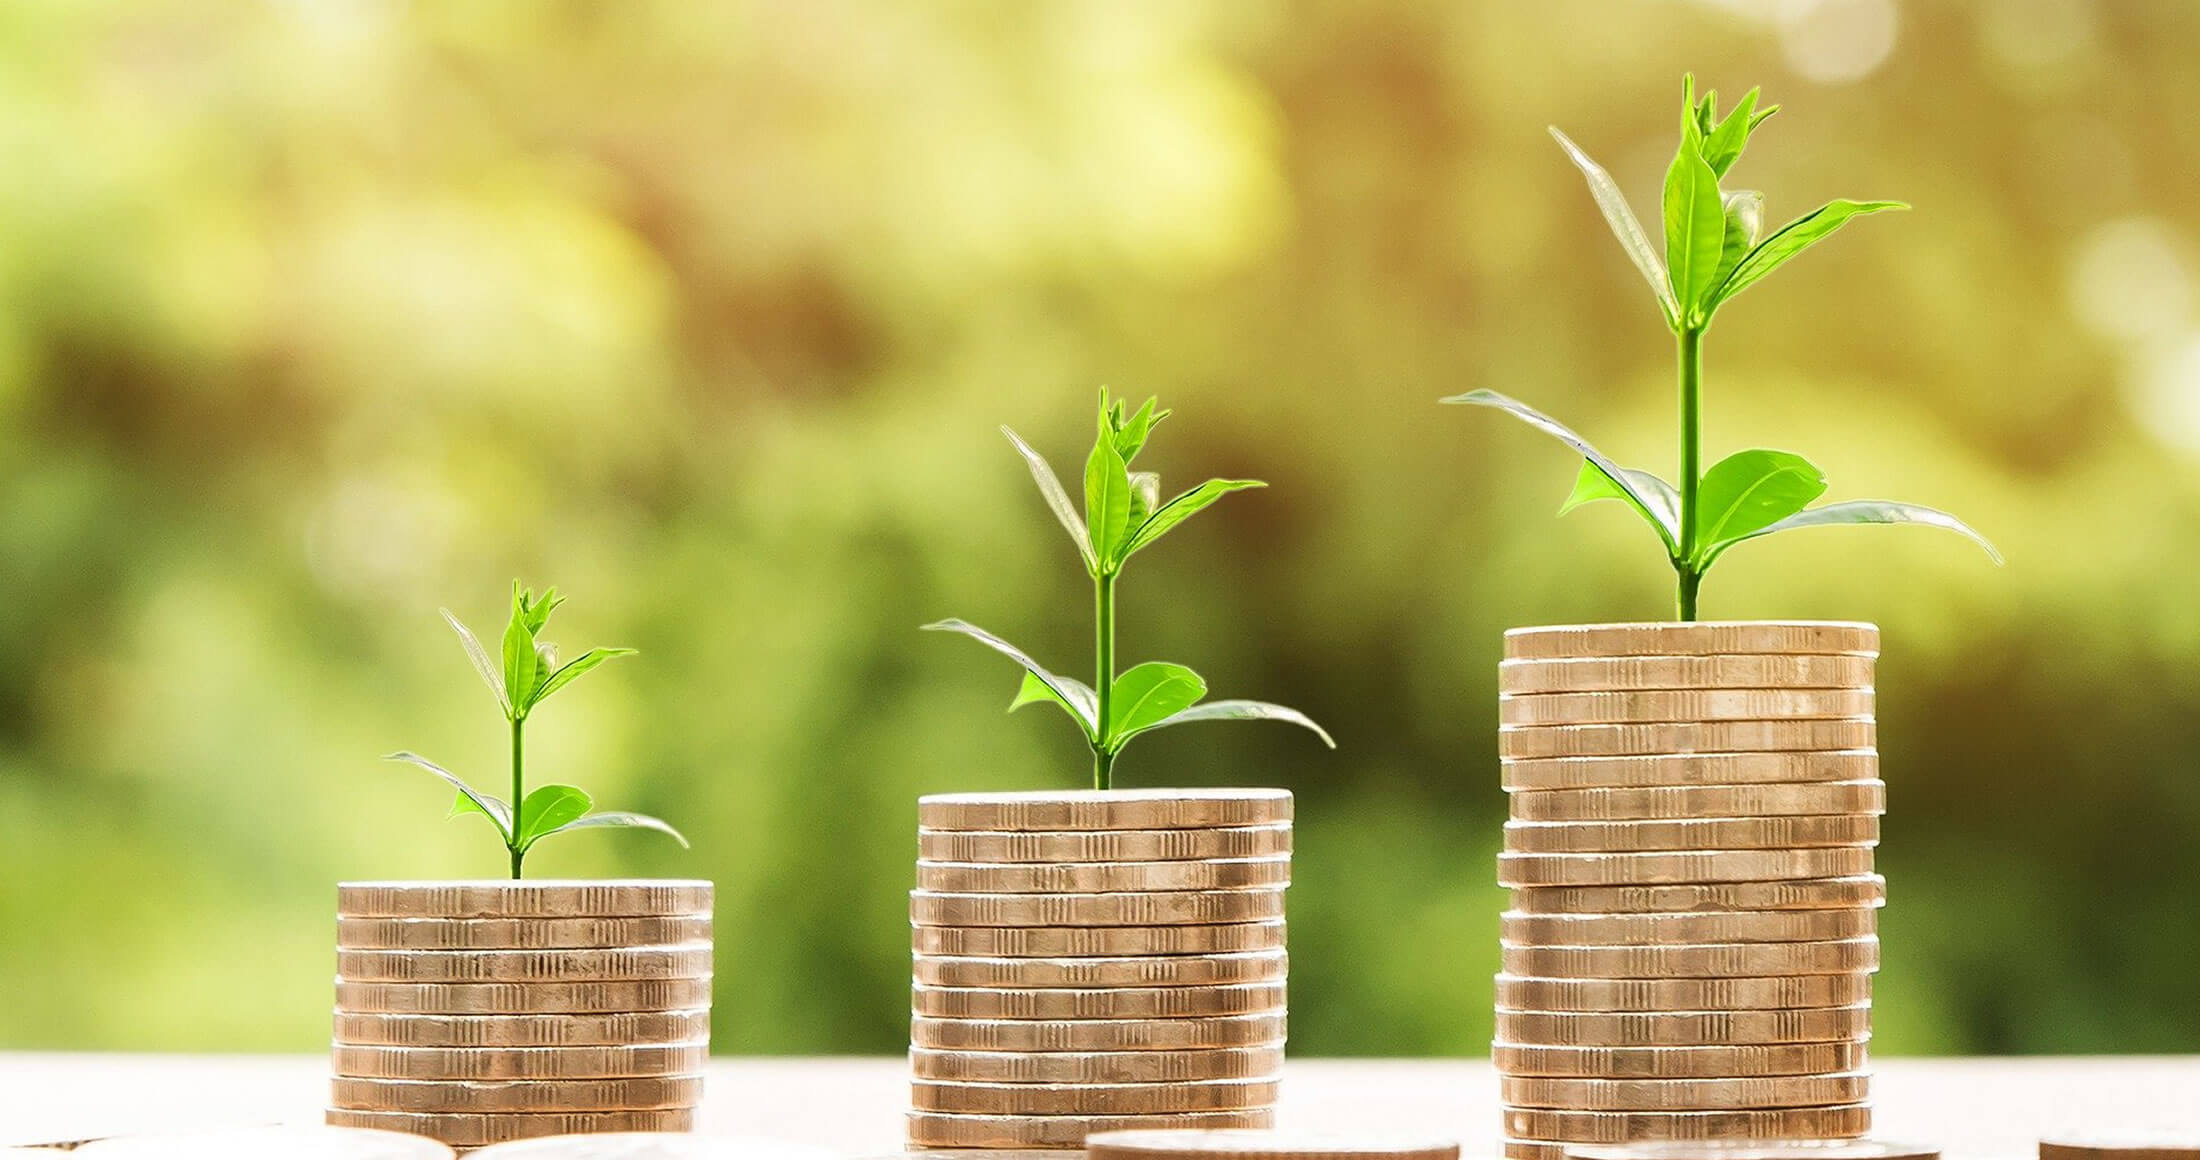 Image of money and plant growth